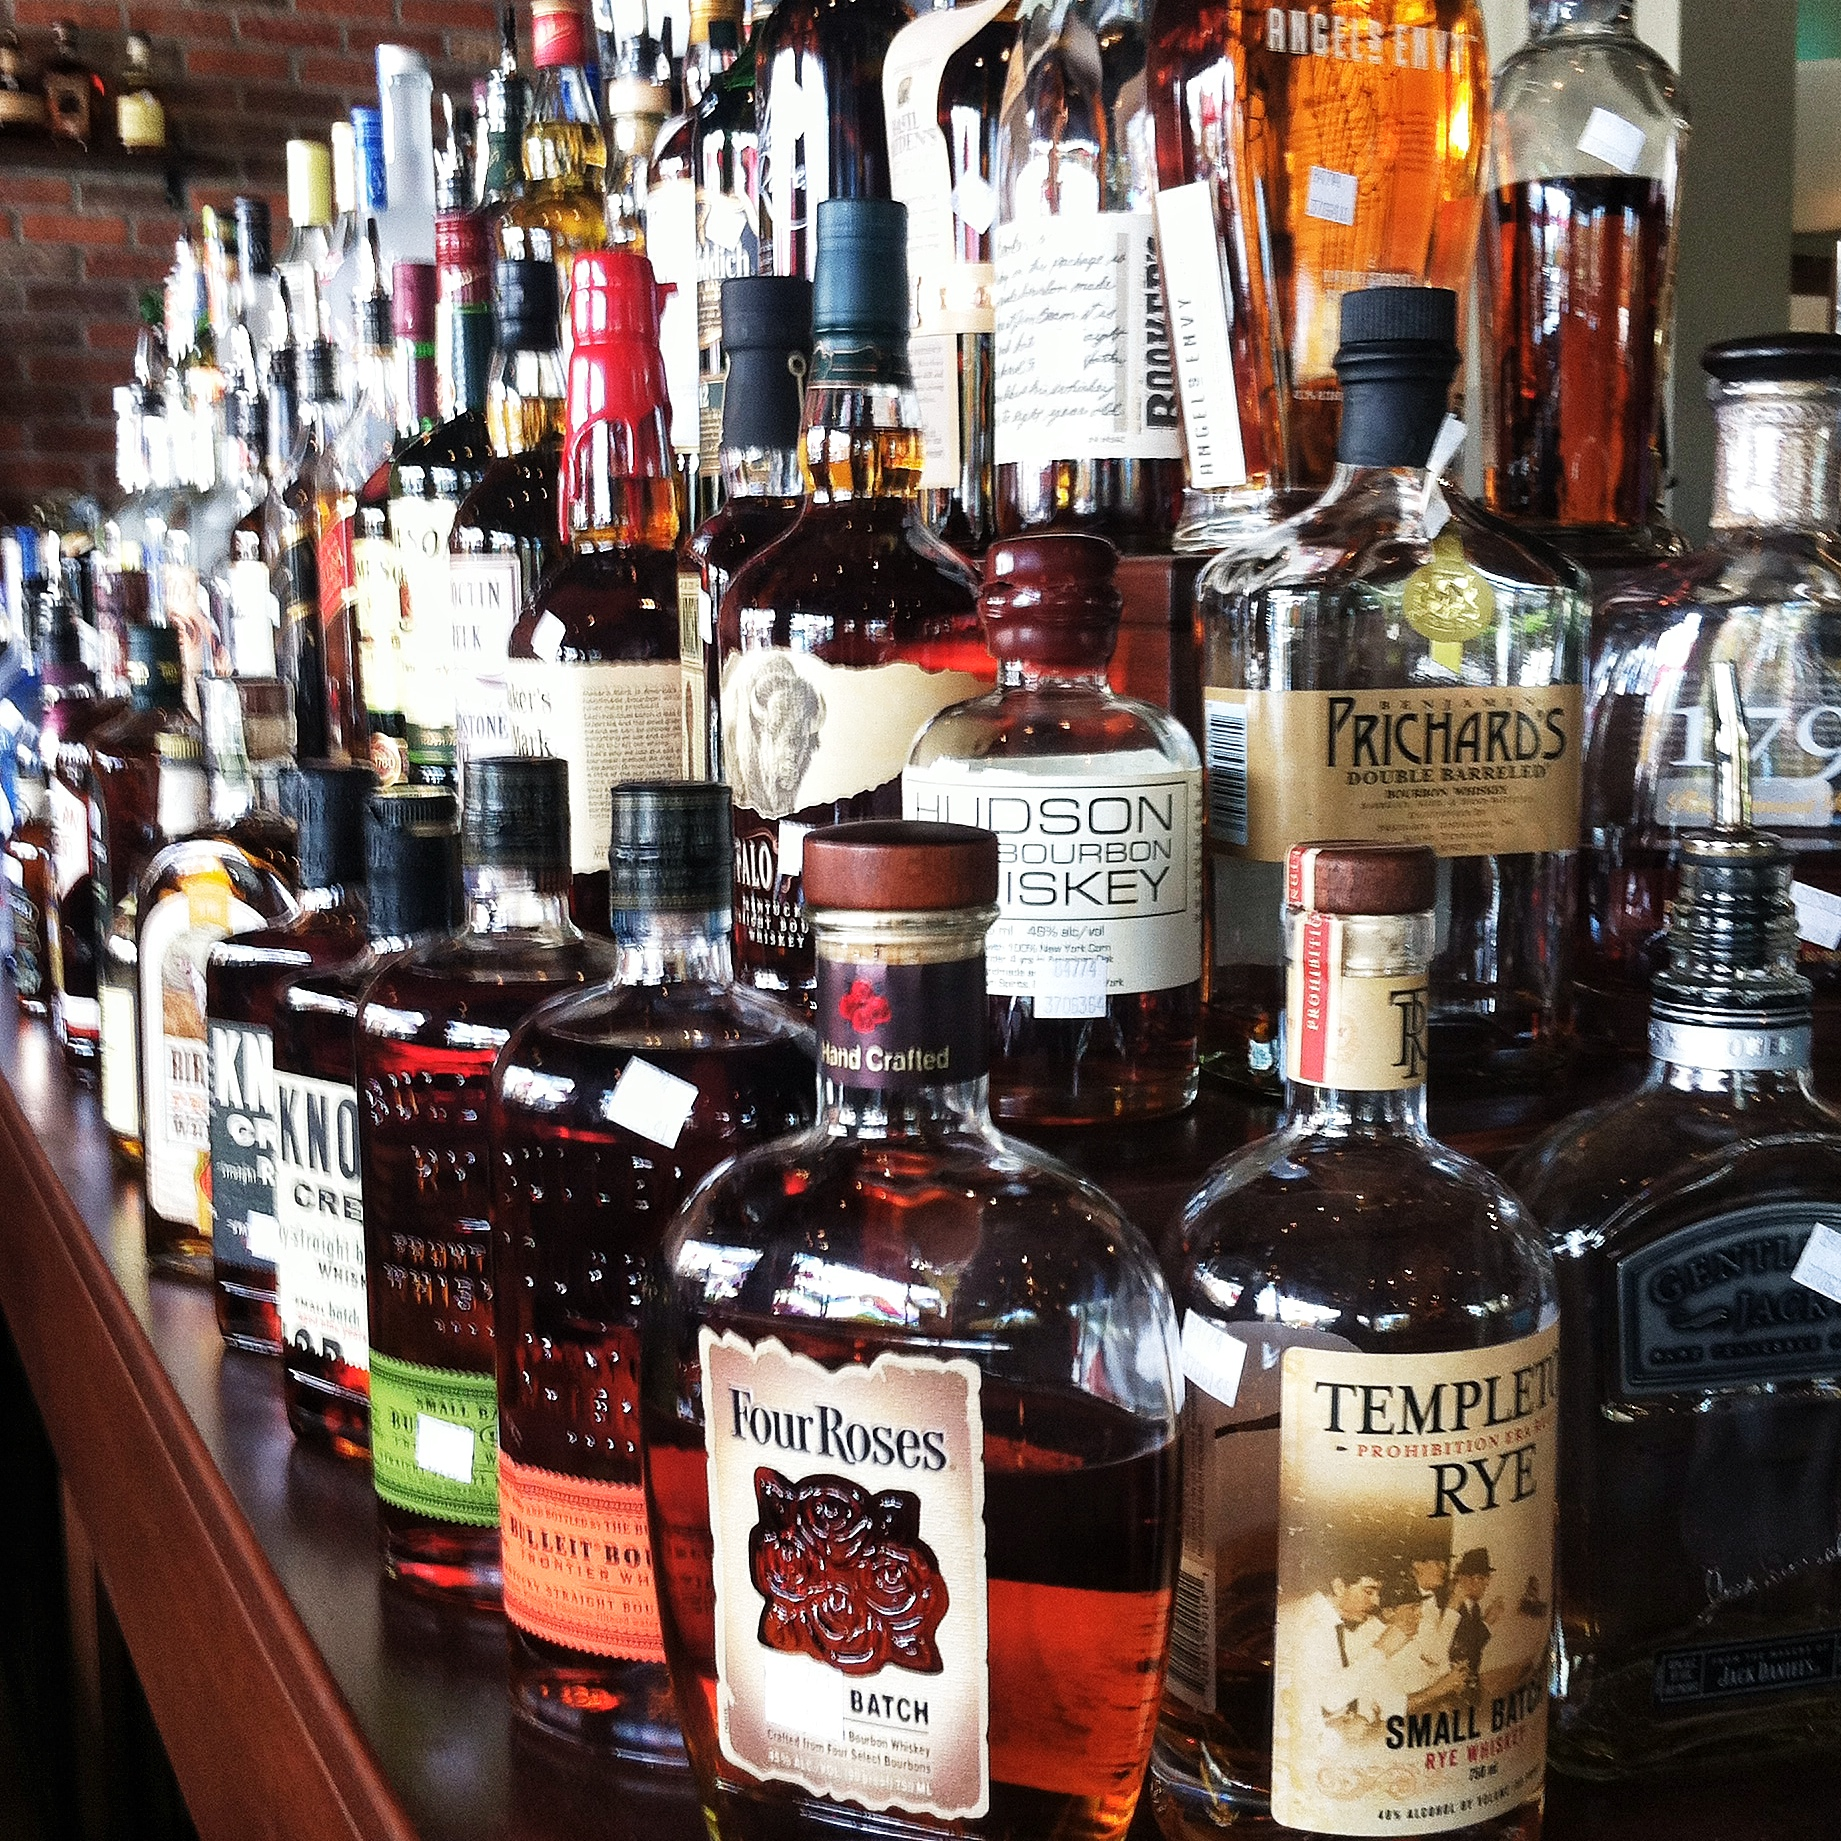 Plenty of Whiskey, Bourbon, & Scotch